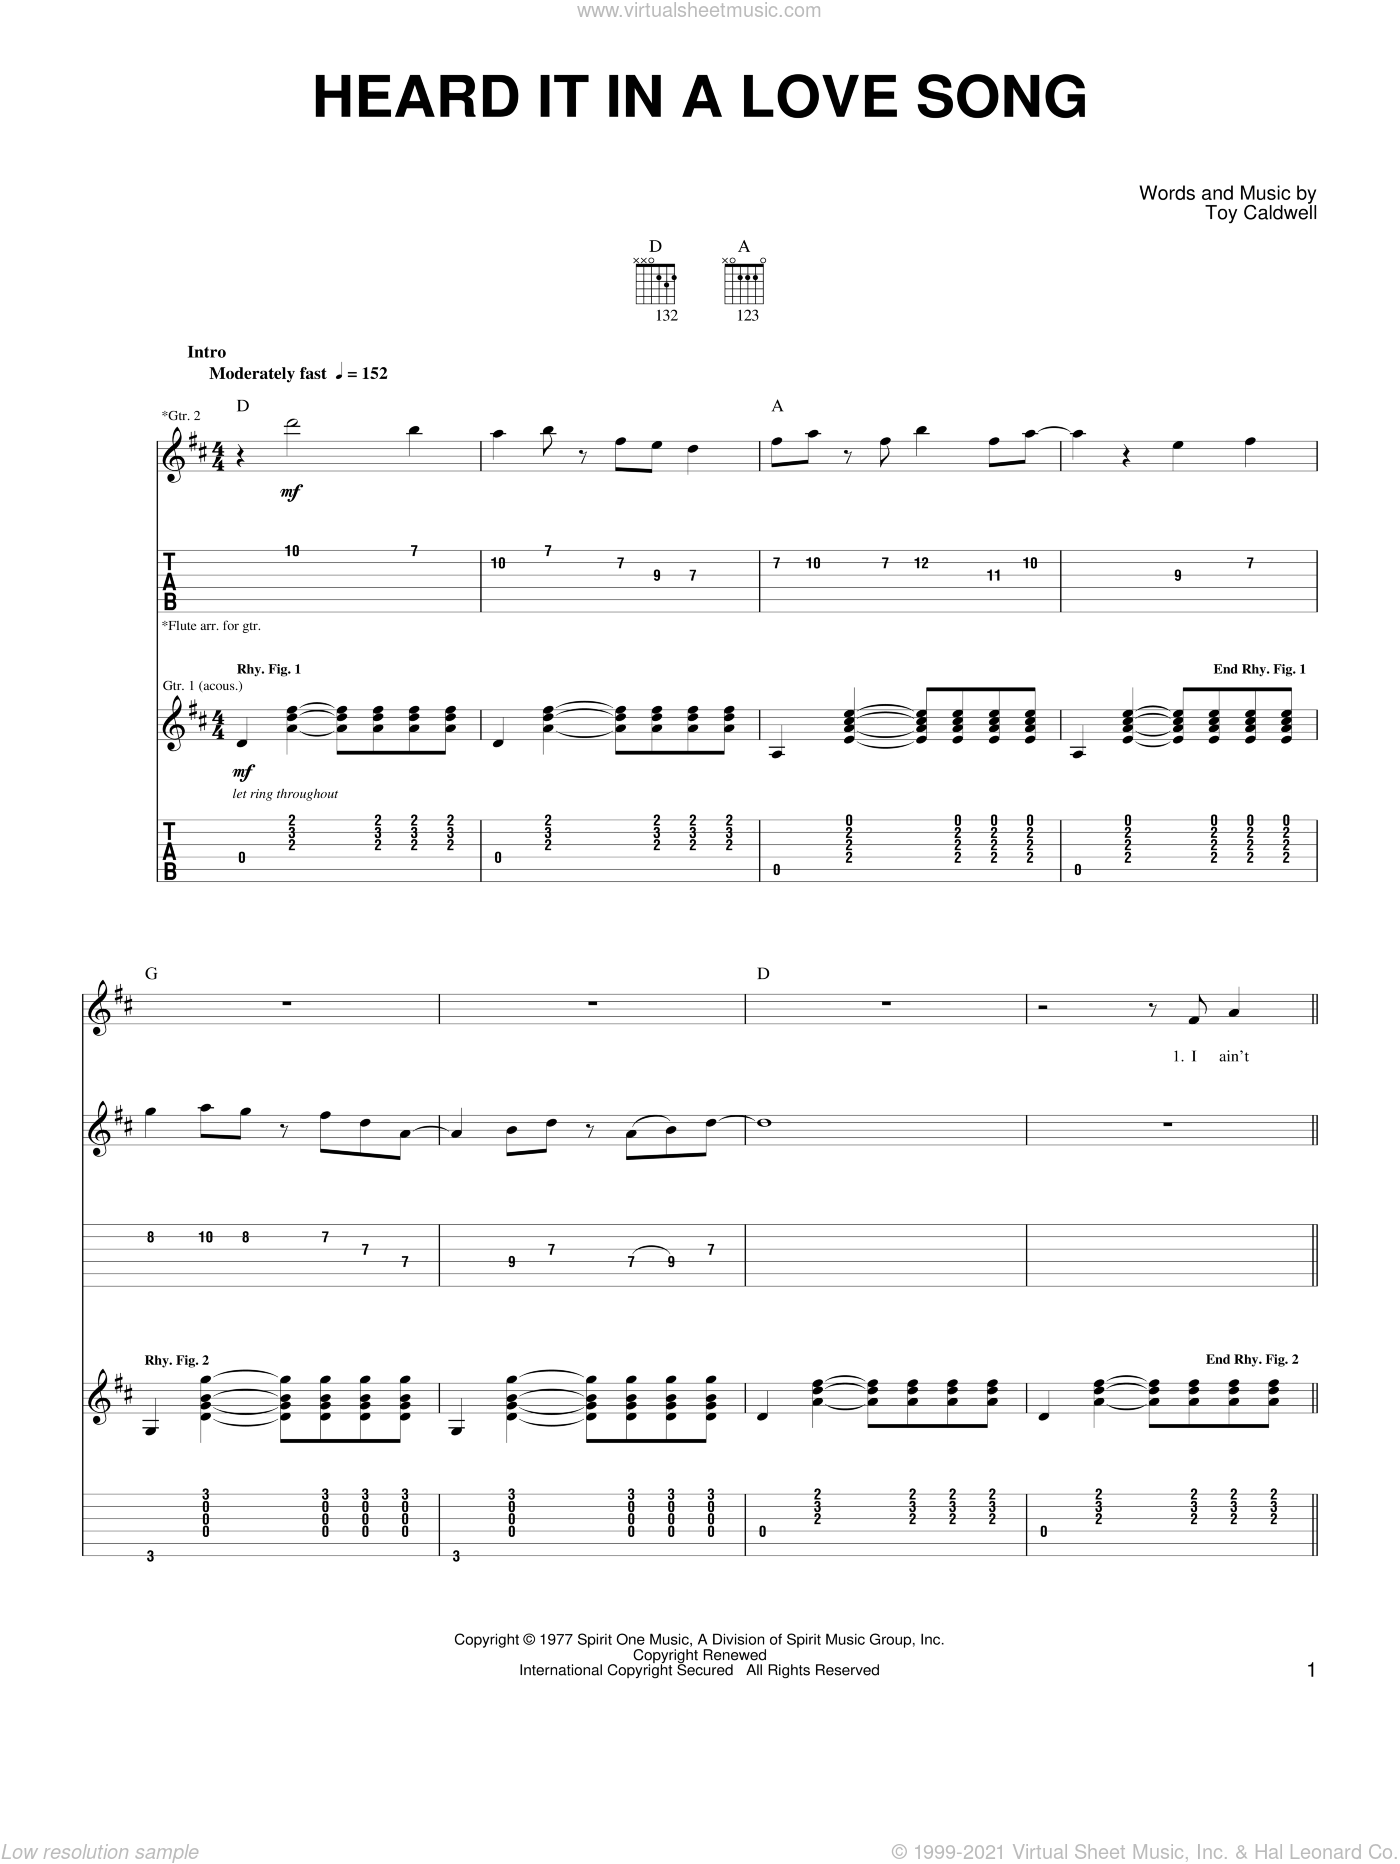 Heard It In A Love Song sheet music for guitar solo (easy tablature) by Toy Caldwell